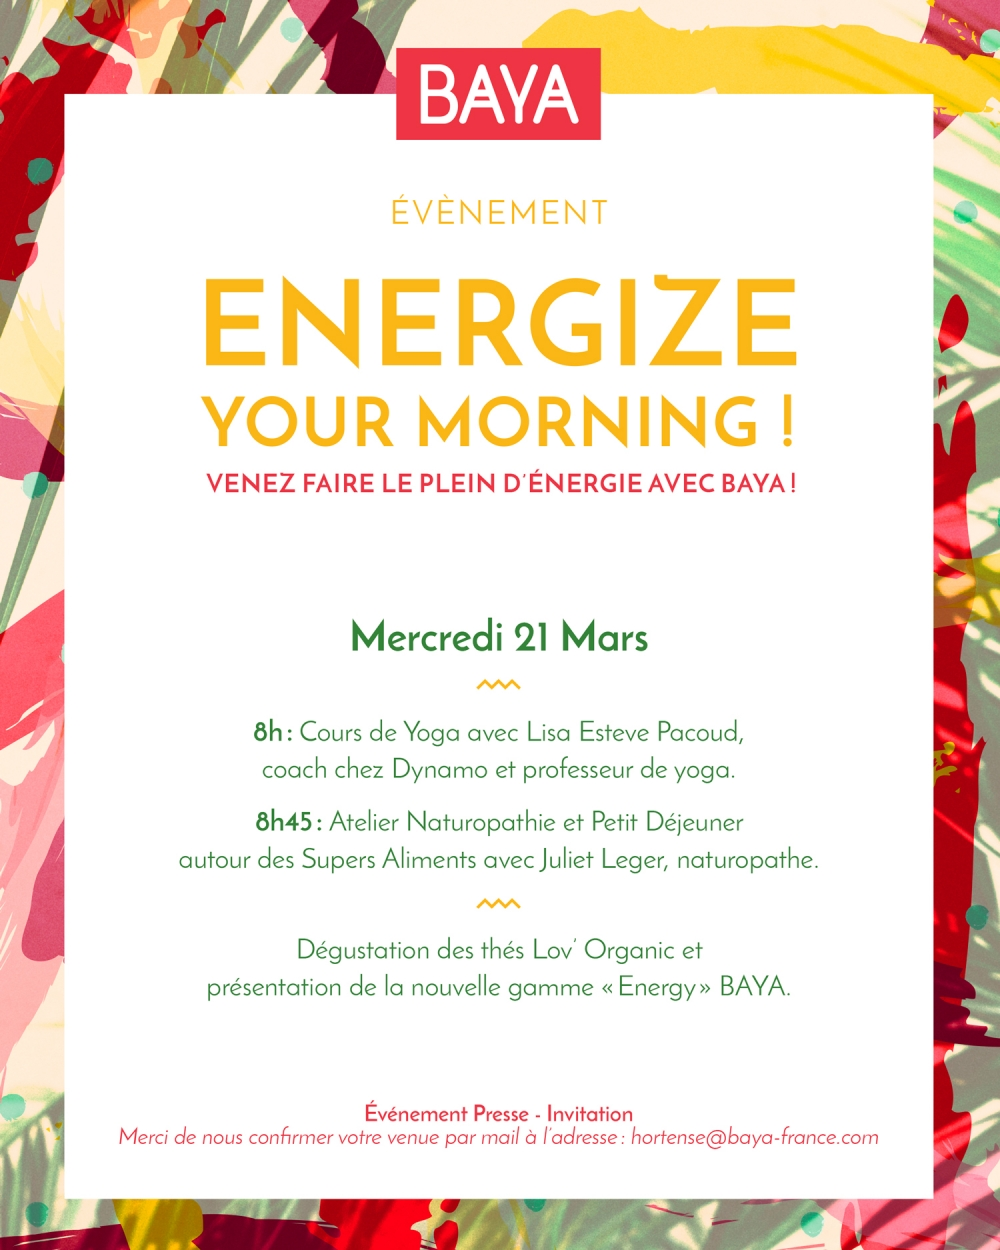 energize-your-morning-evenement-presse